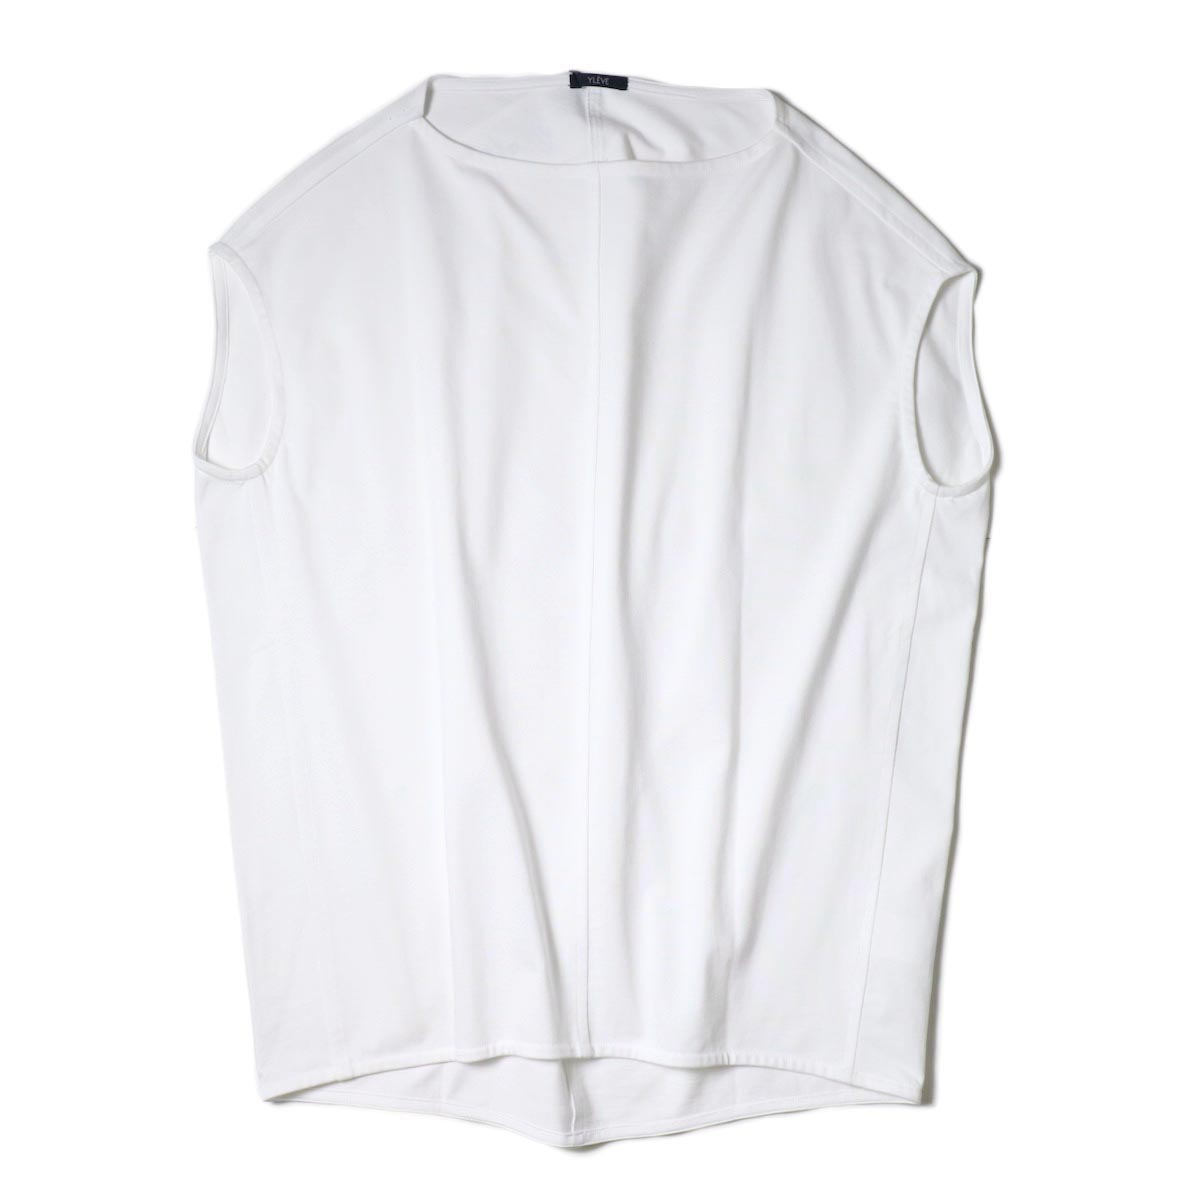 YLEVE / ORGANIC COTTON HIGH COUNT JERSEY N/S P/O (White)